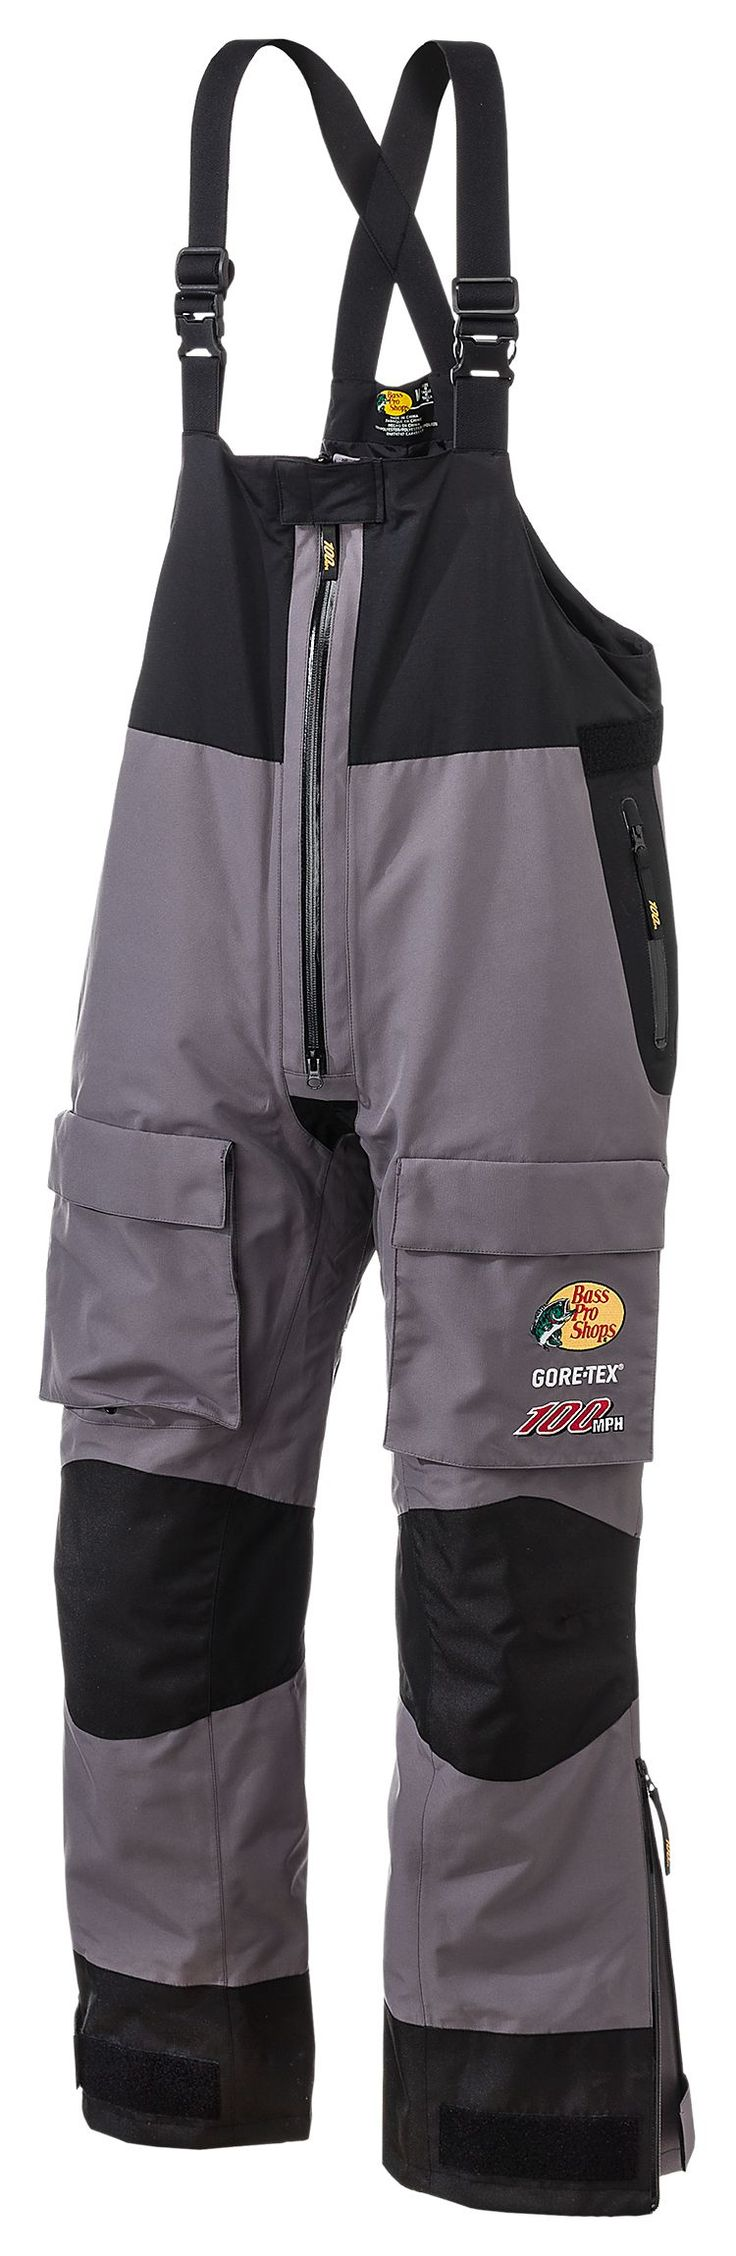 Bass pro shops 100mph gore tex rain bibs for men bass for Mens fishing rain gear